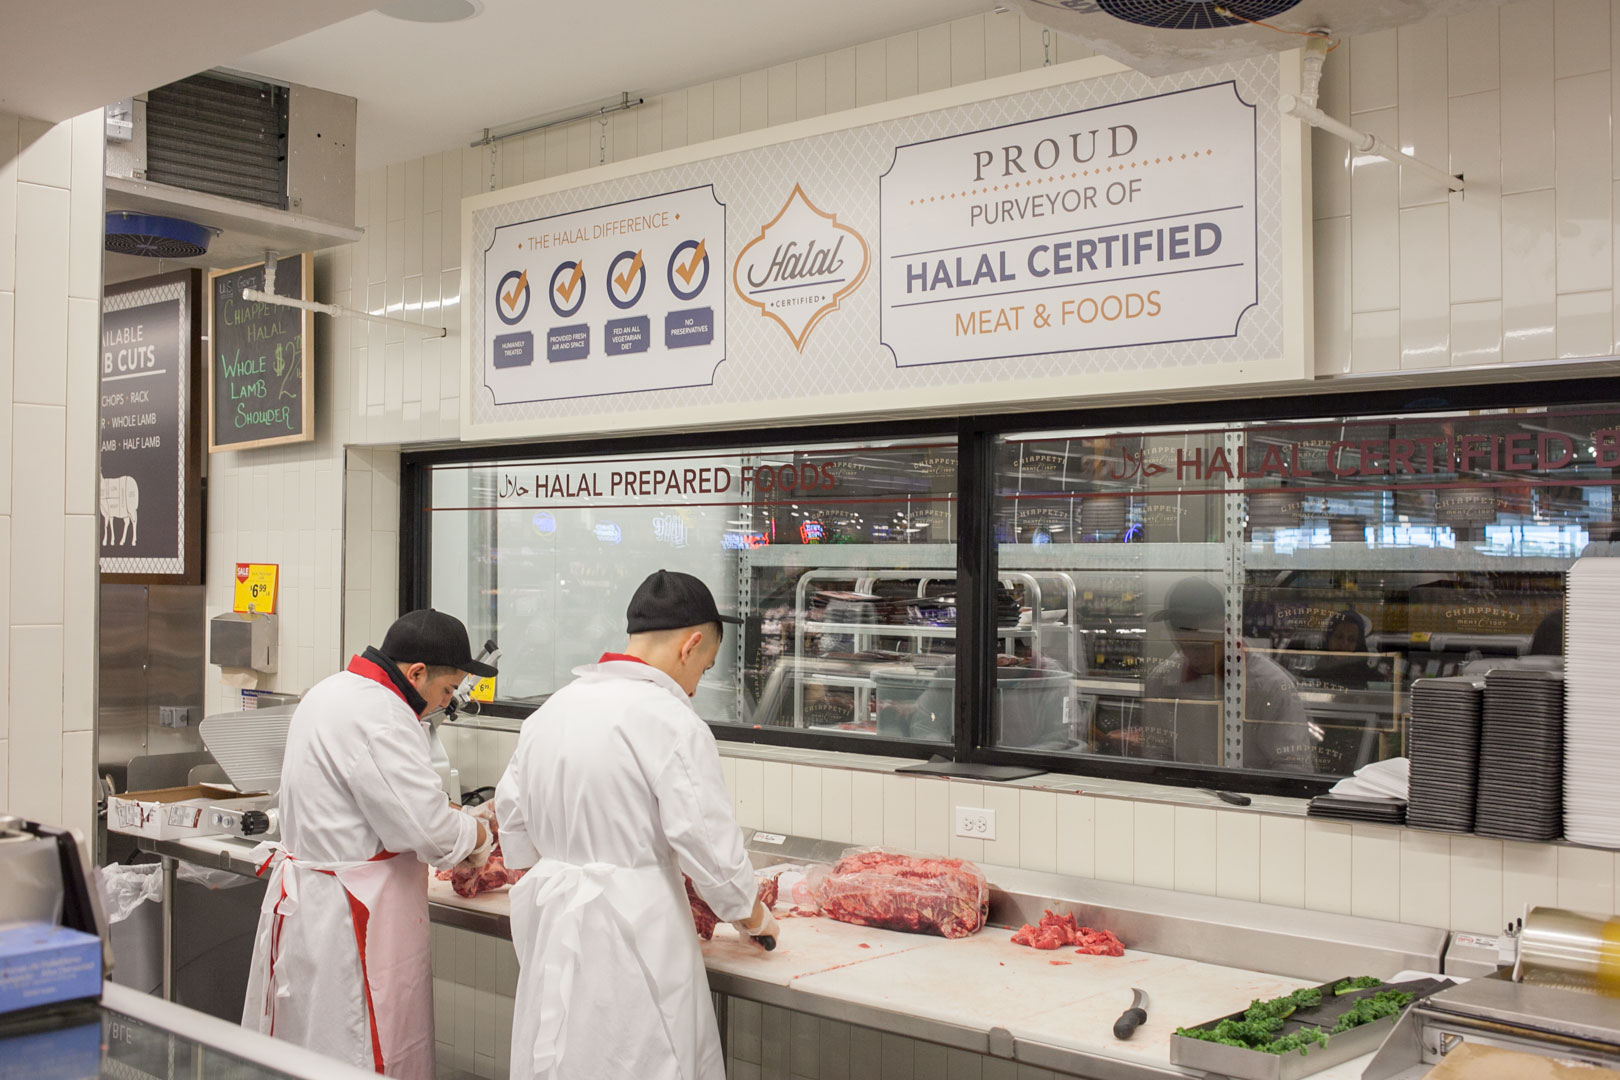 petes_bridgeview_halal_butcher_cutting